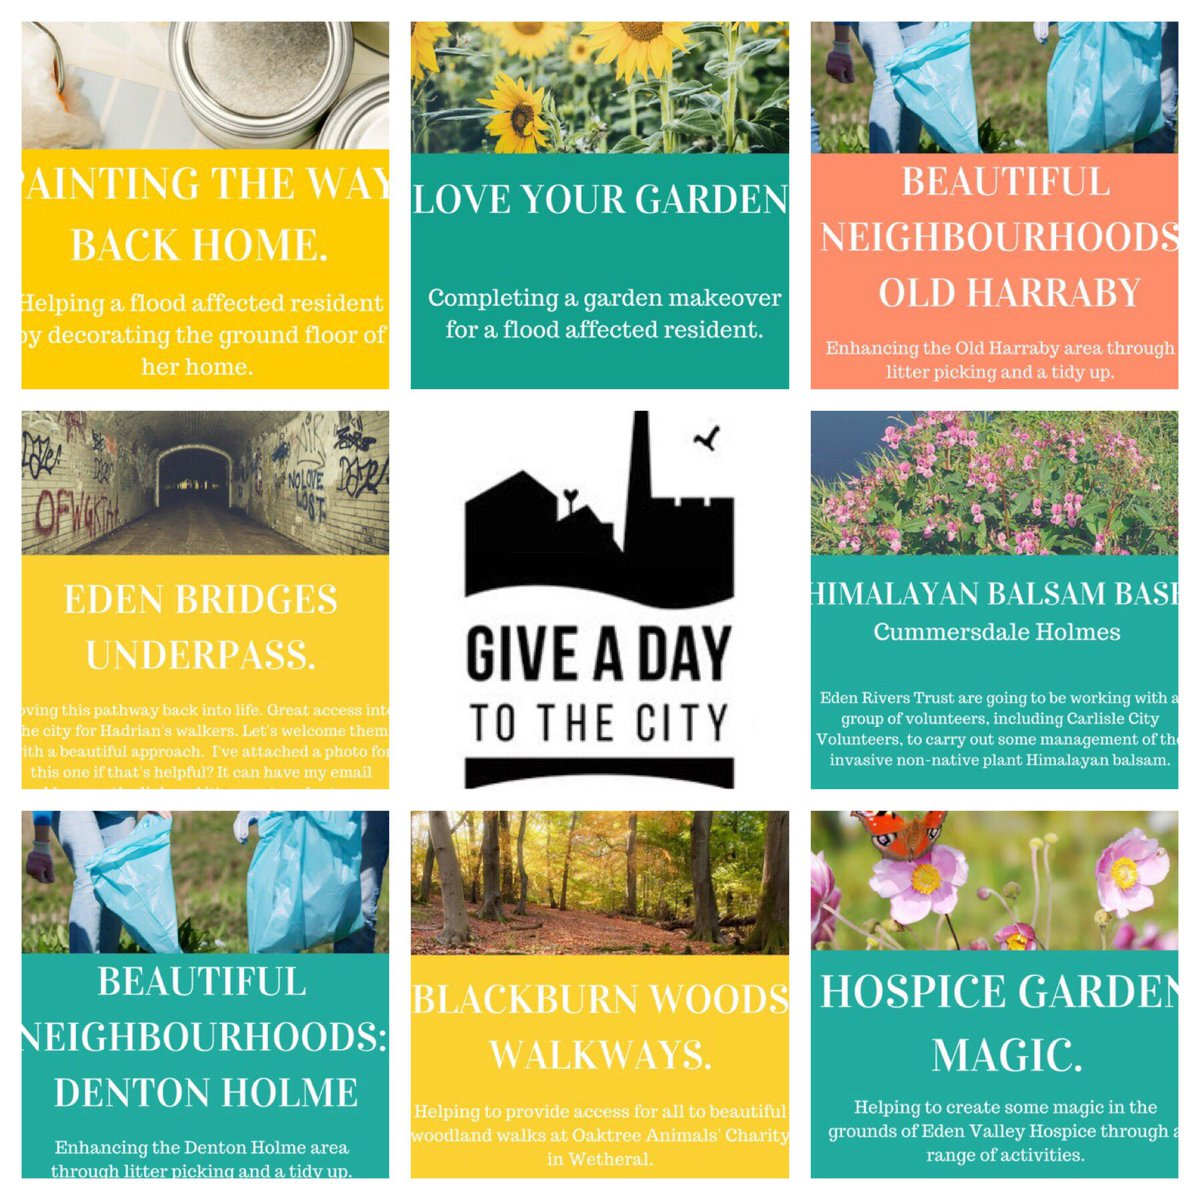 #pressrelease All you need to know about #GiveaDayCarlisle Thanks @KatieBTC  http:// mailchi.mp/1cd1fca98543/p ress-release-on-give-a-day-to-the-city-giveadaycarlisle-2017-is-on-a-roll &nbsp; … <br>http://pic.twitter.com/sMcFdxNECO